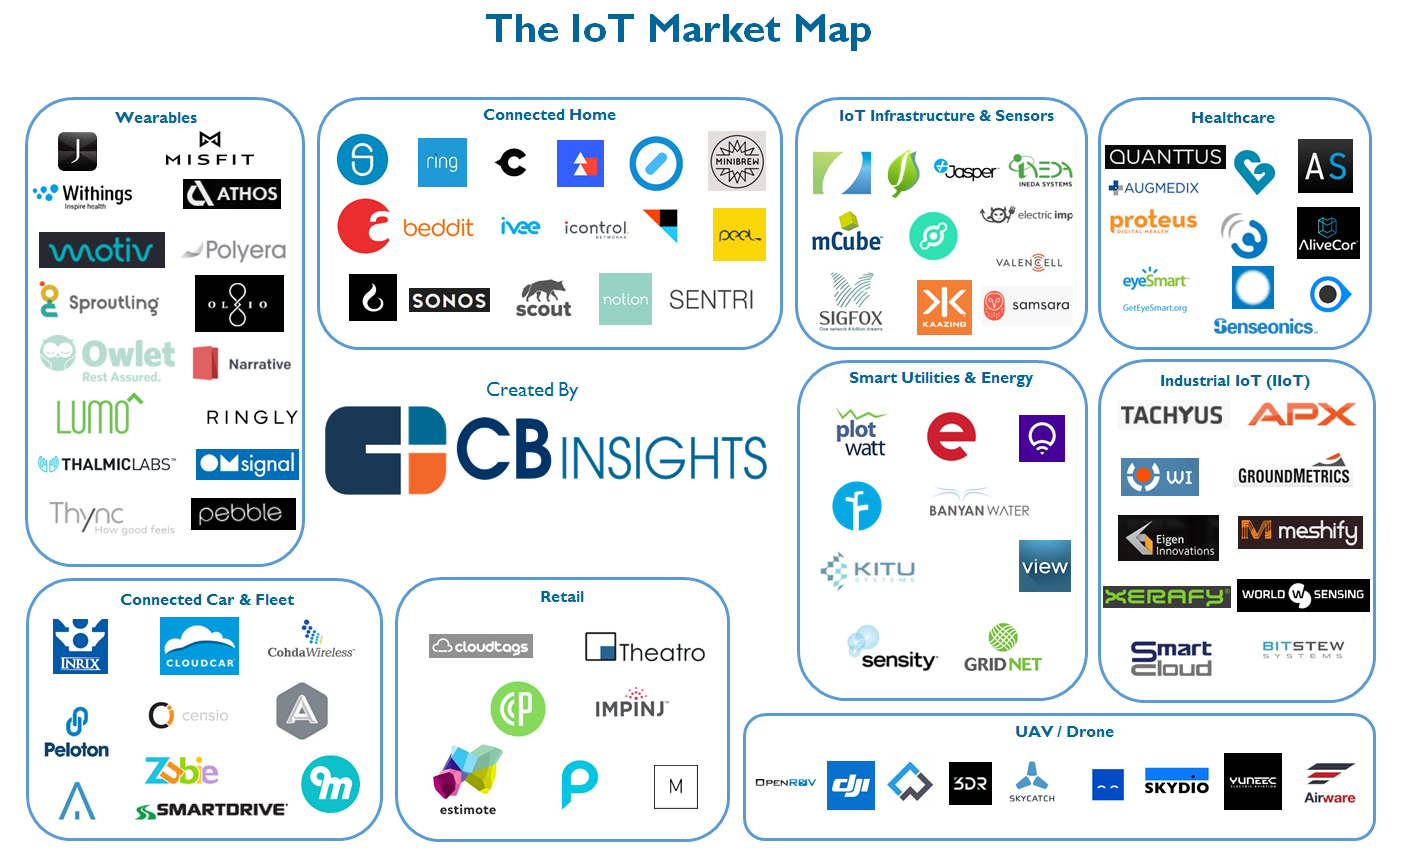 Iot Market Map And  pany List on electric car infographic